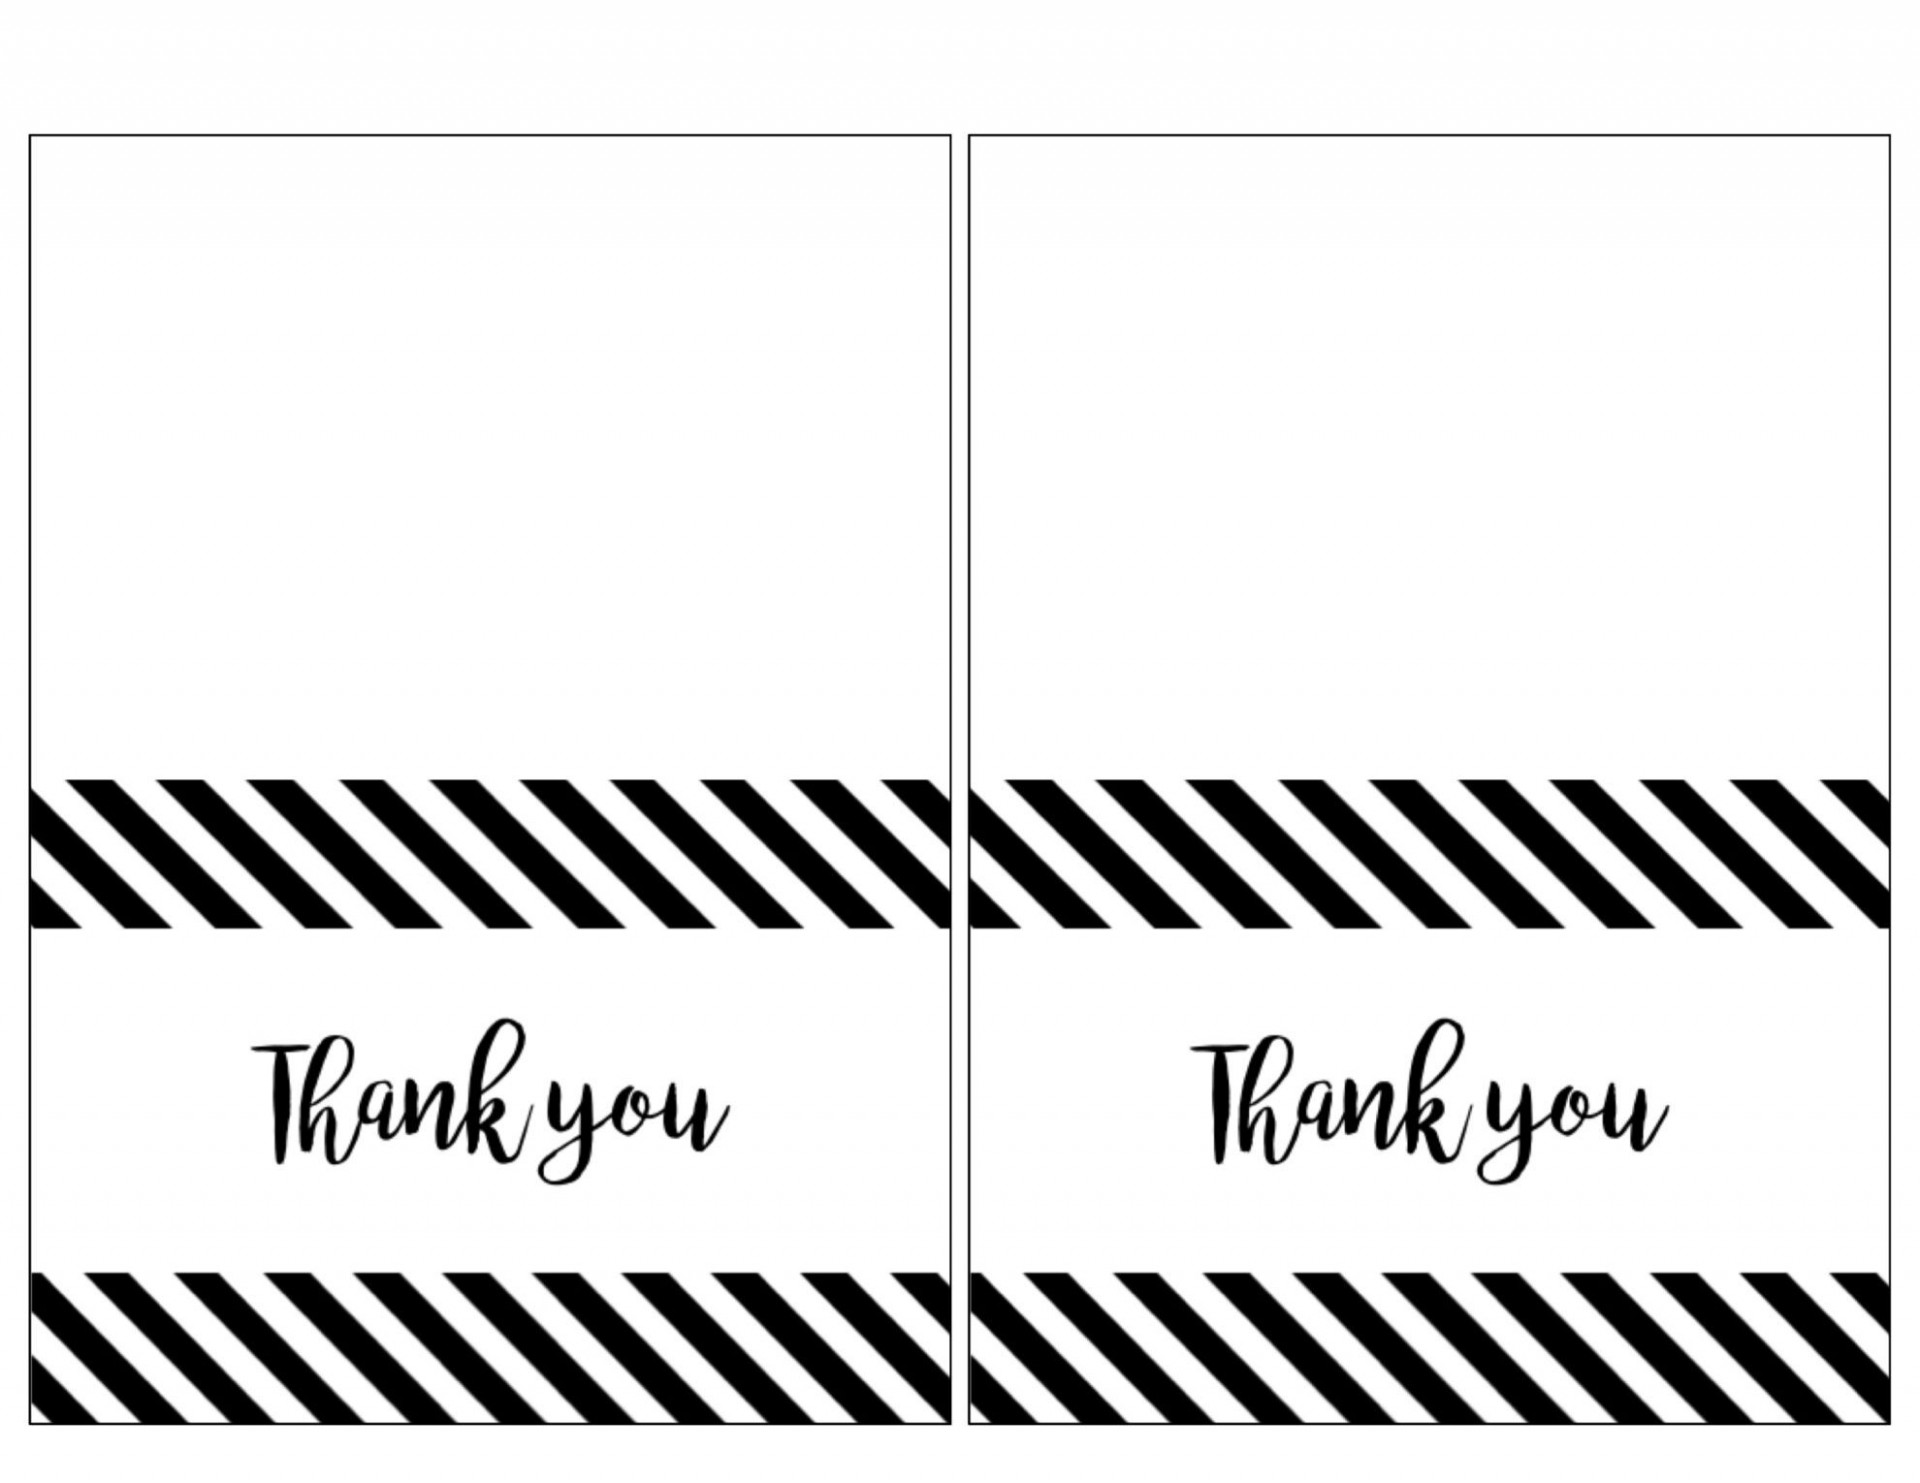 007 Wondrou Thank You Note Template Free Printable Picture 1920